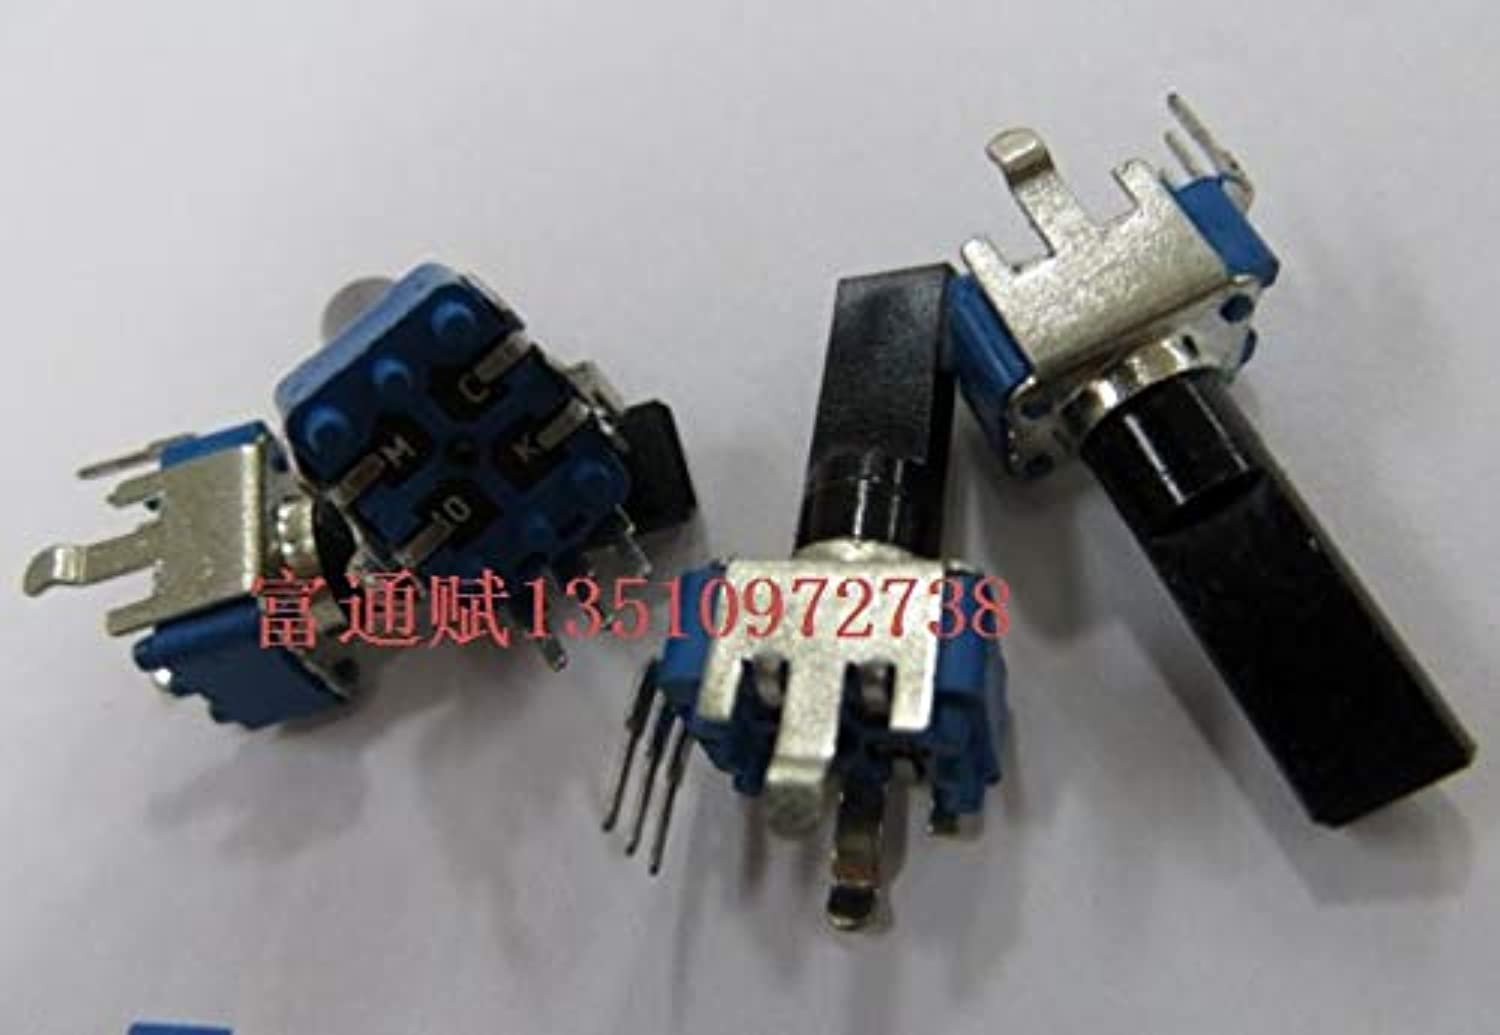 Taiwan Imported Alpha Mixer R09 Type 10K Potentiometer 17MMF Handle Long Switch